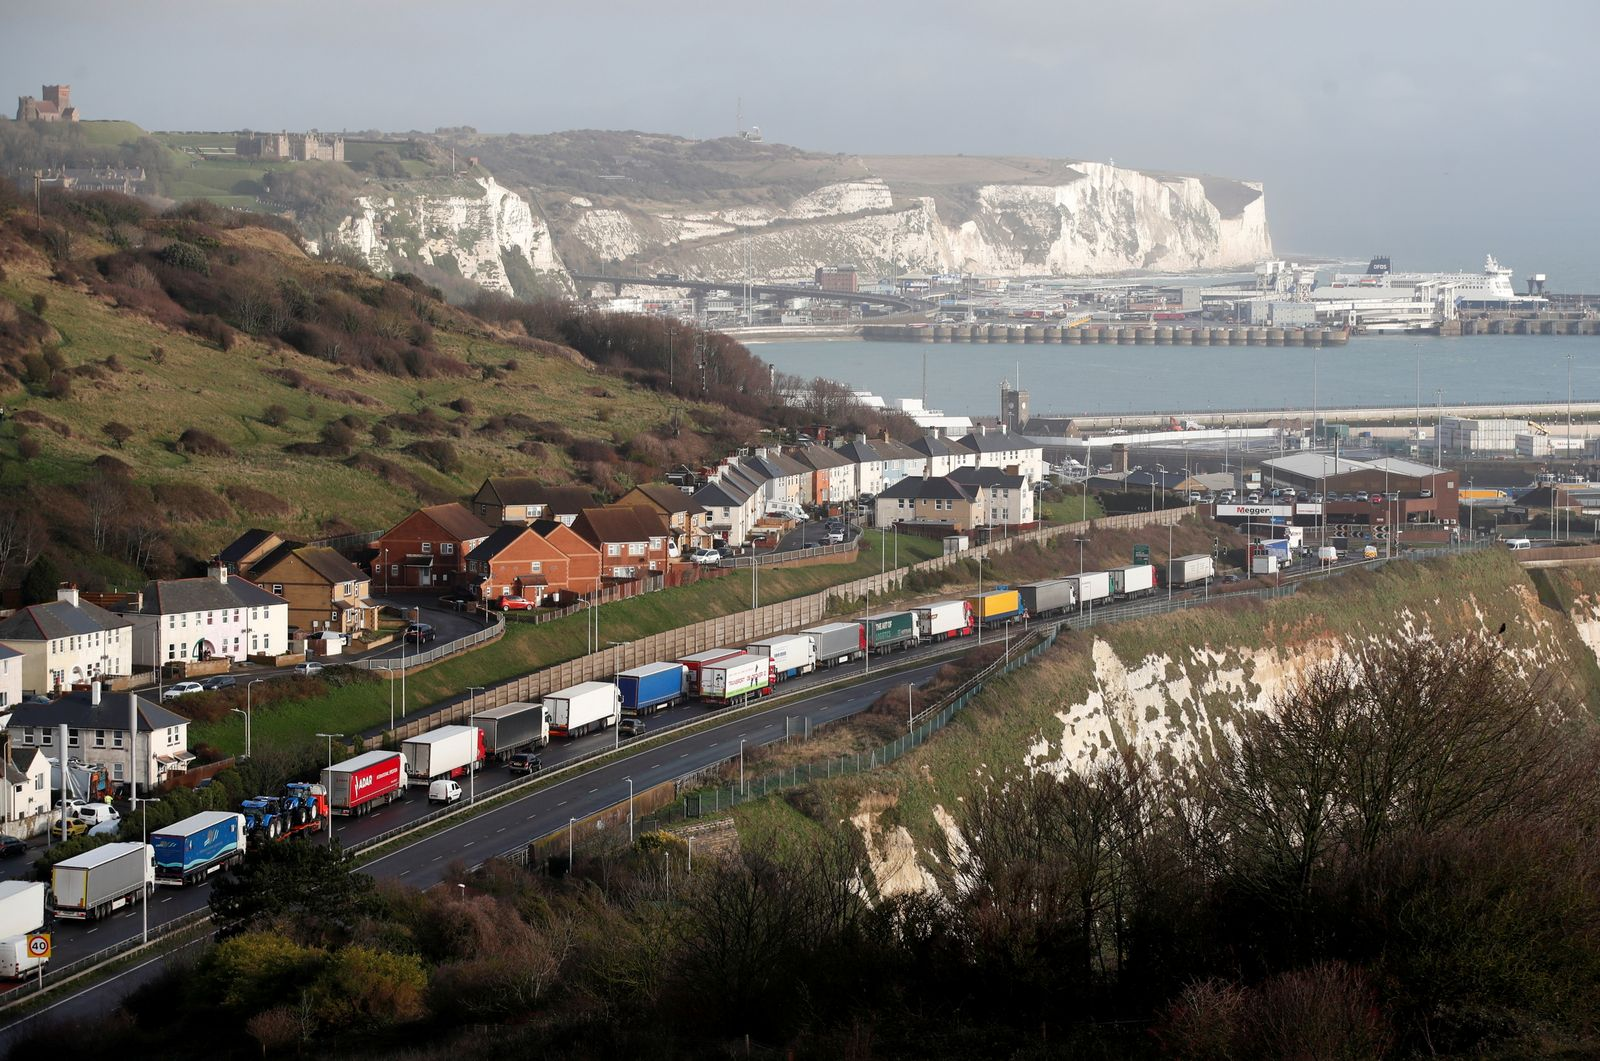 Lorries queue on the route into the port of Dover to board ferries to Europe